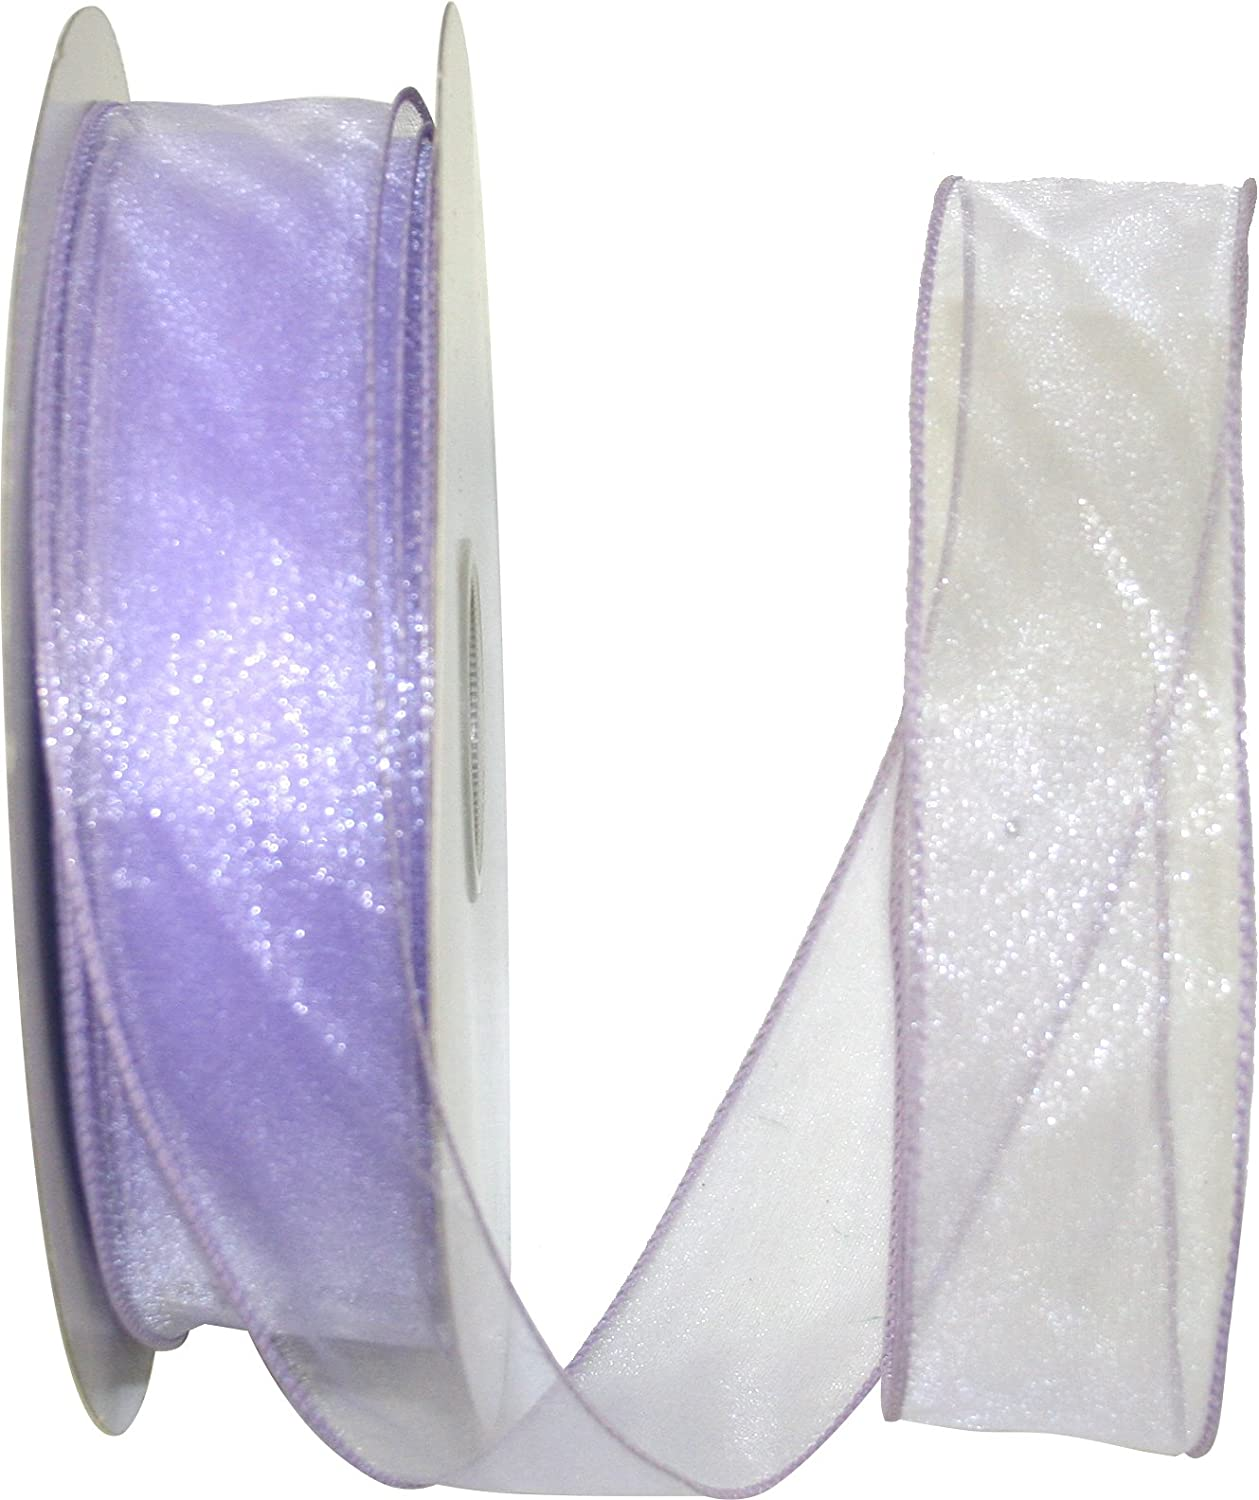 1-1//2 Inch X 50 Yards Reliant Ribbon 99908W-810-09K Sheer Lovely Value Wired Edge Ribbon Ivory